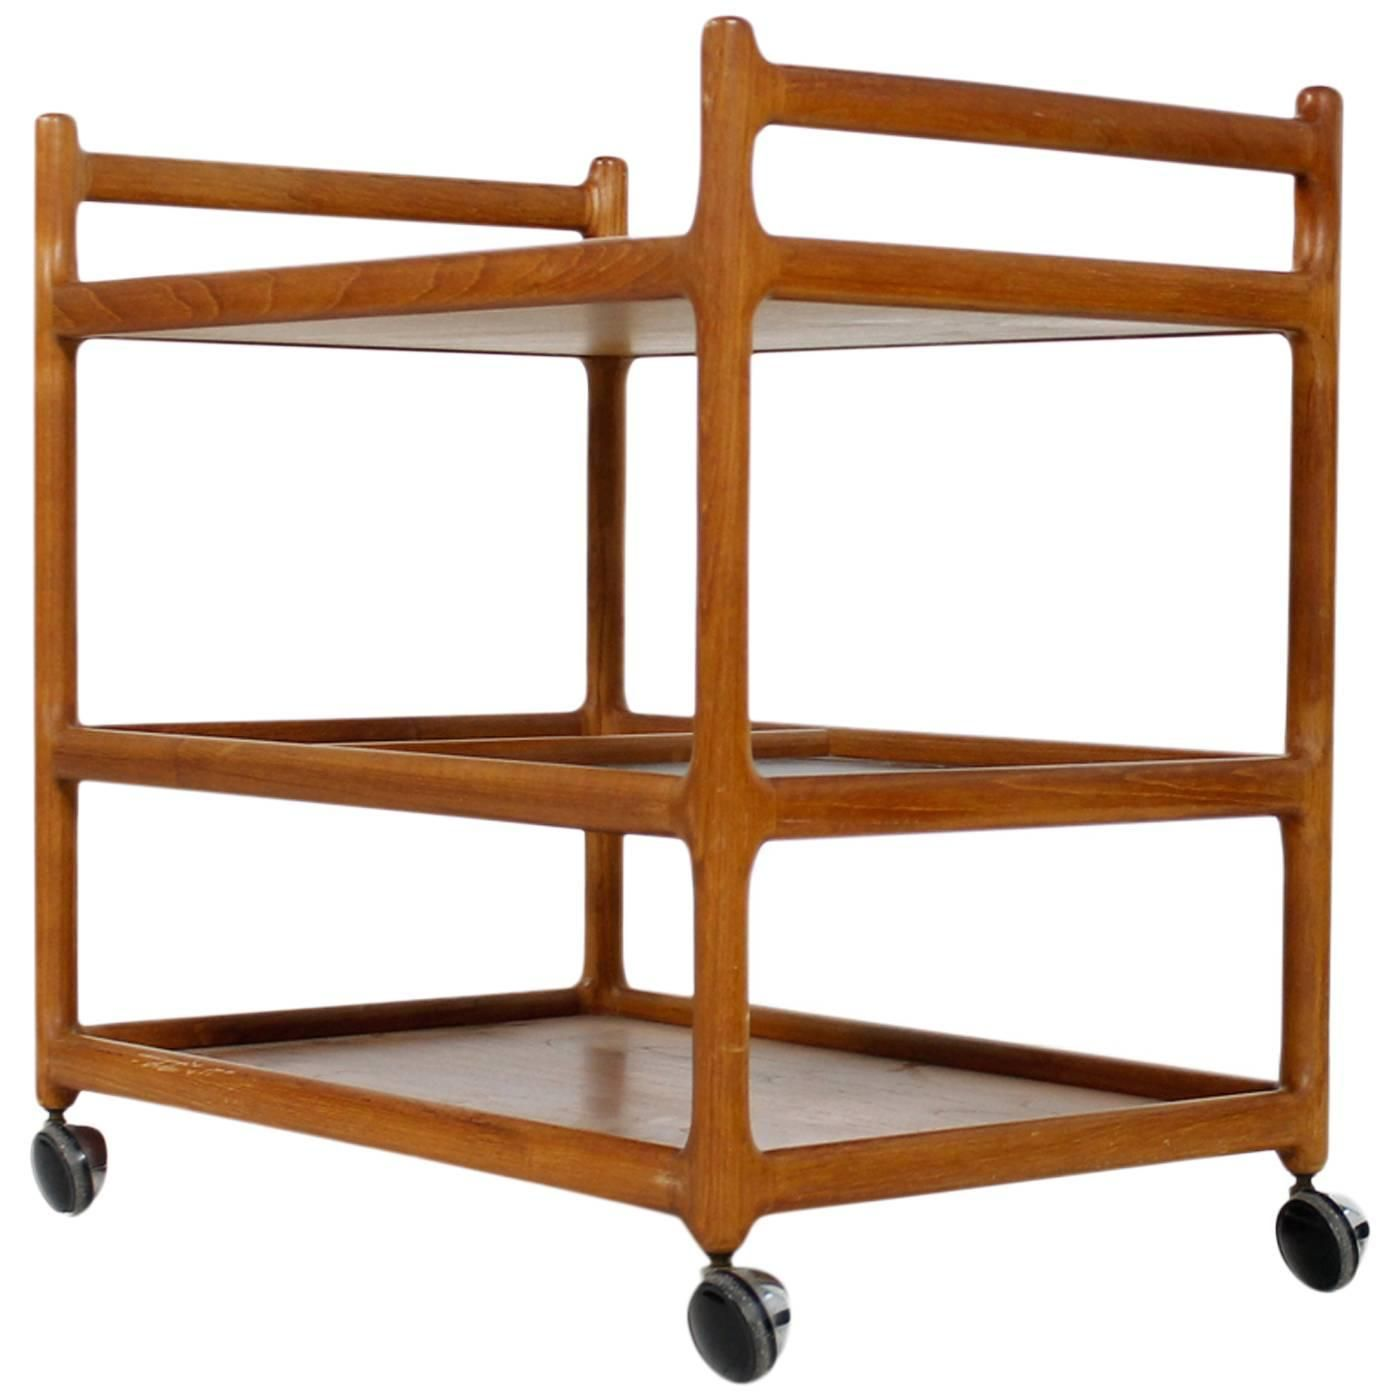 A Frame Trolley Pin By Nidia Fiukowski On Bar In 2019 Tea Trolley Trolley Table